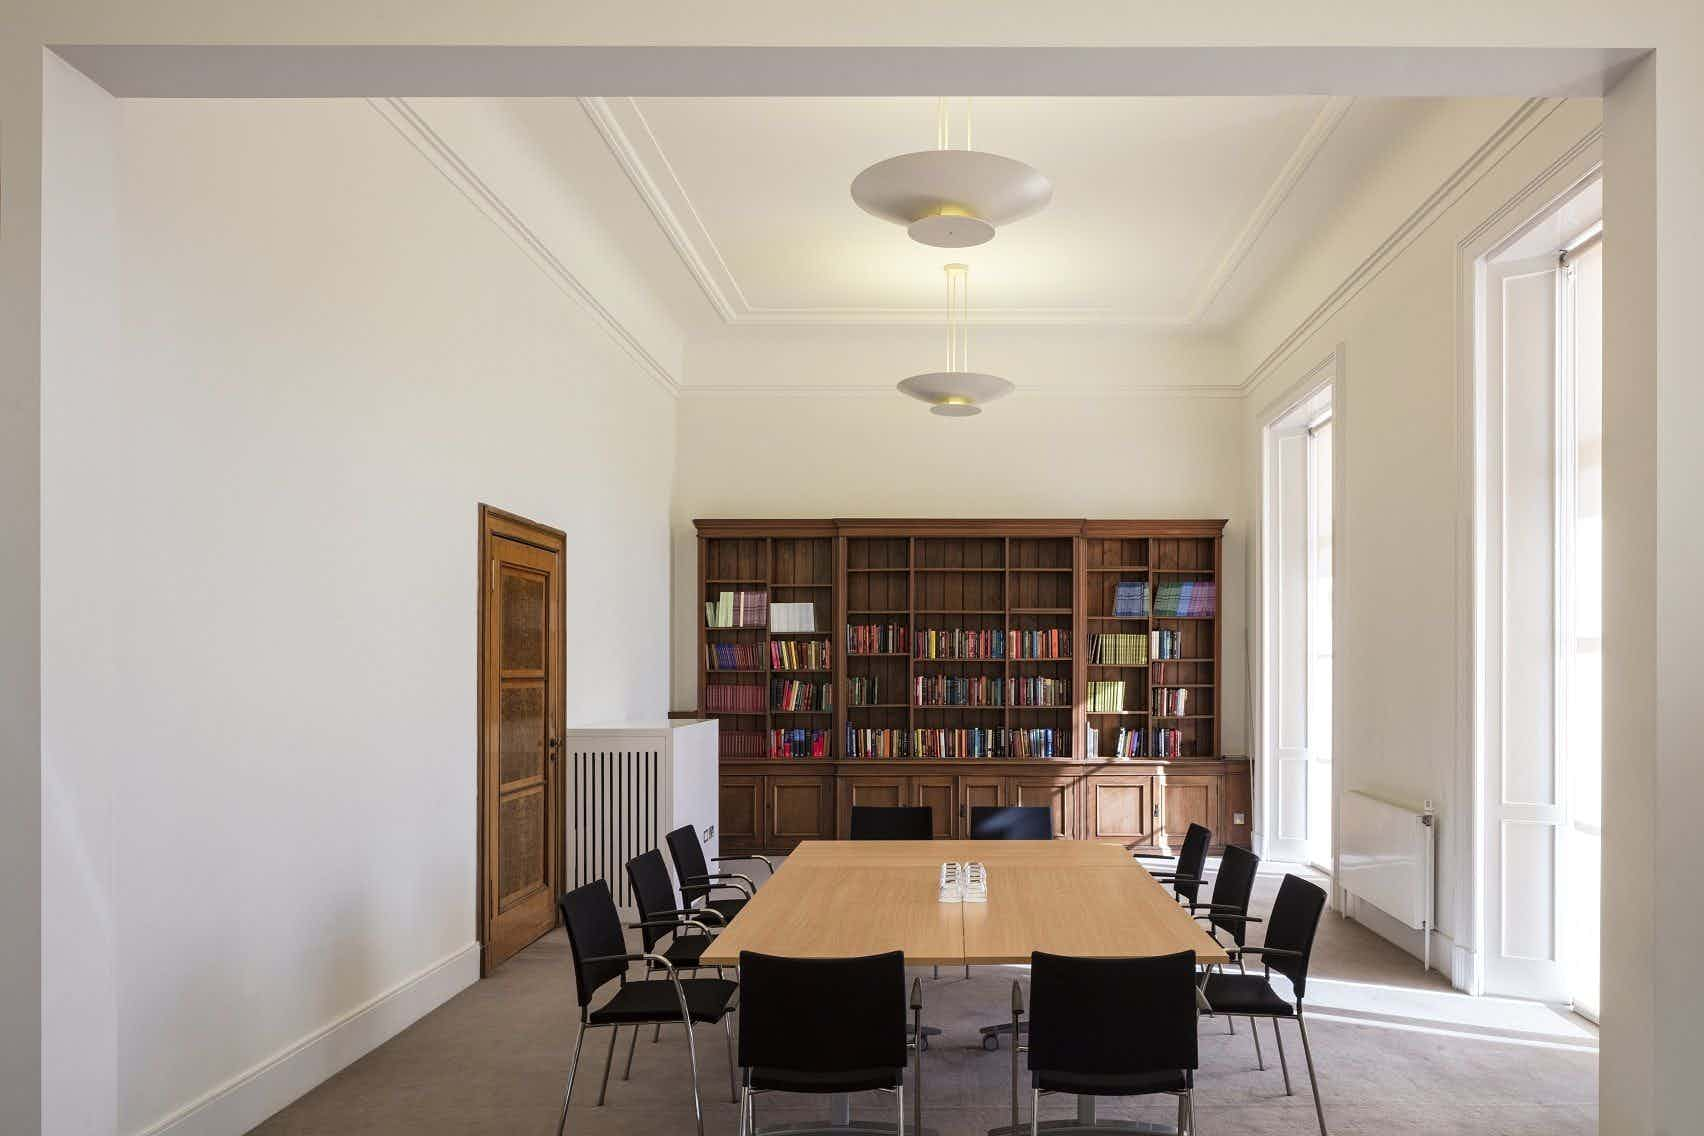 Wolfson room 3., The Royal Society